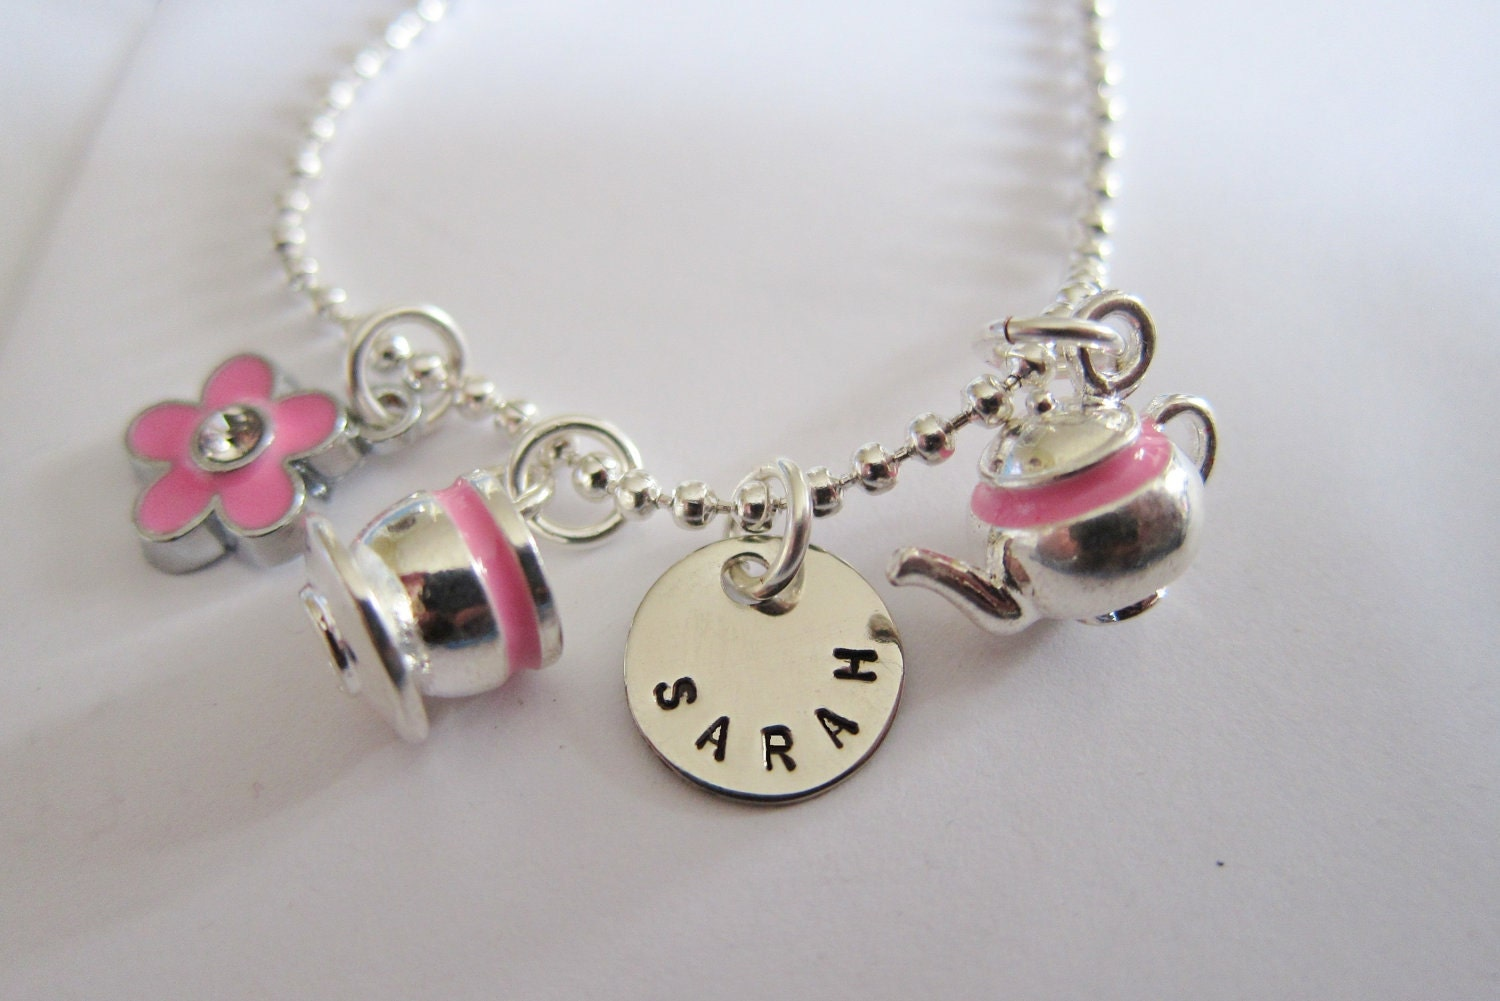 Personalized - Princess Tea Party - Tea Party - Tea Party Birthday - Tea Cup - Tea Pot - Mad Hatters Tea Party - Girls Charm Necklace - timbrodamore